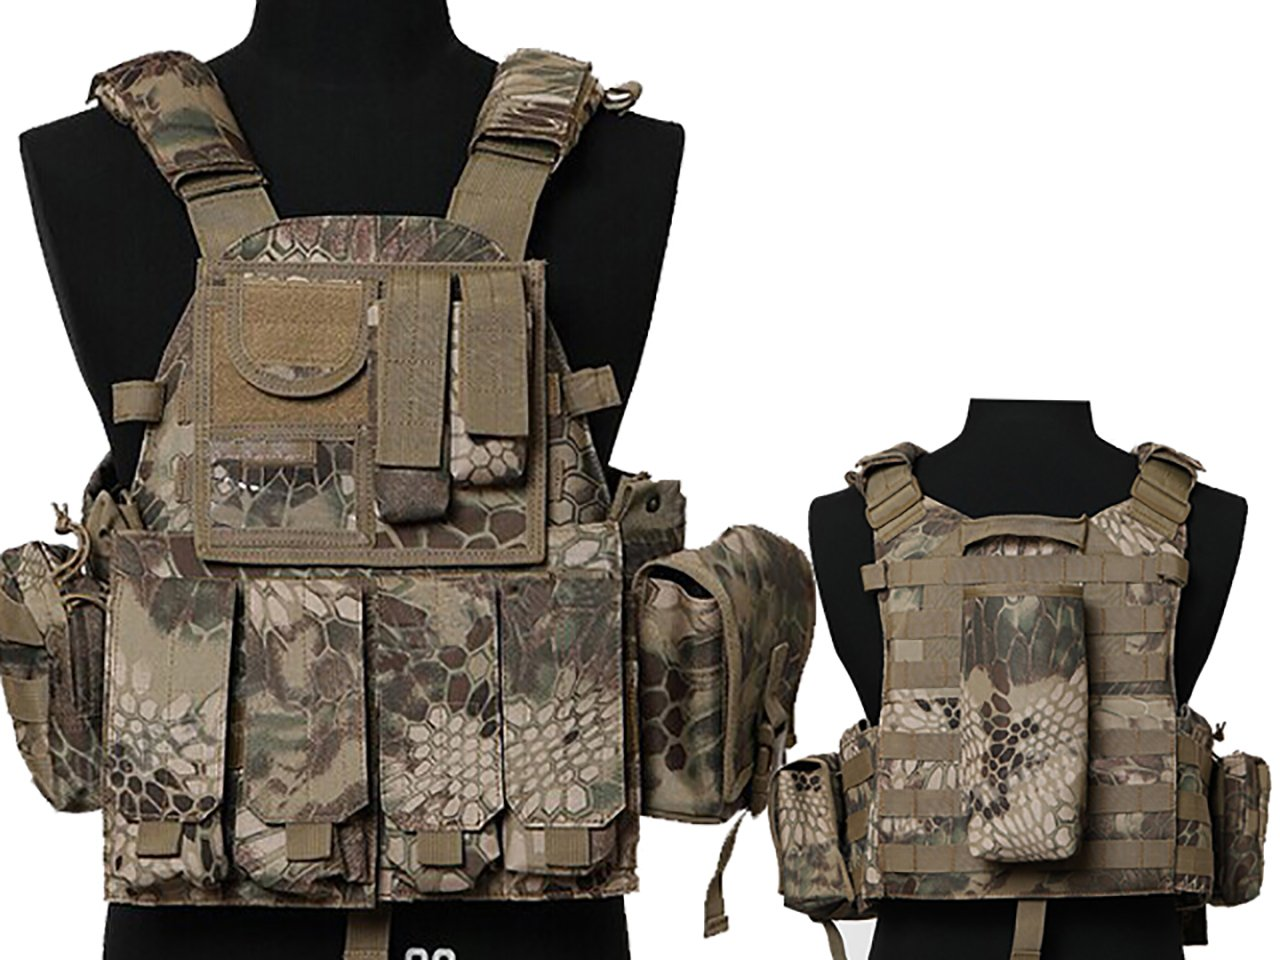 TacticalマルチAttack MOLLE CombatベストマガジンポーチAirsoft Paintball Military HLD B079Z6XVDD